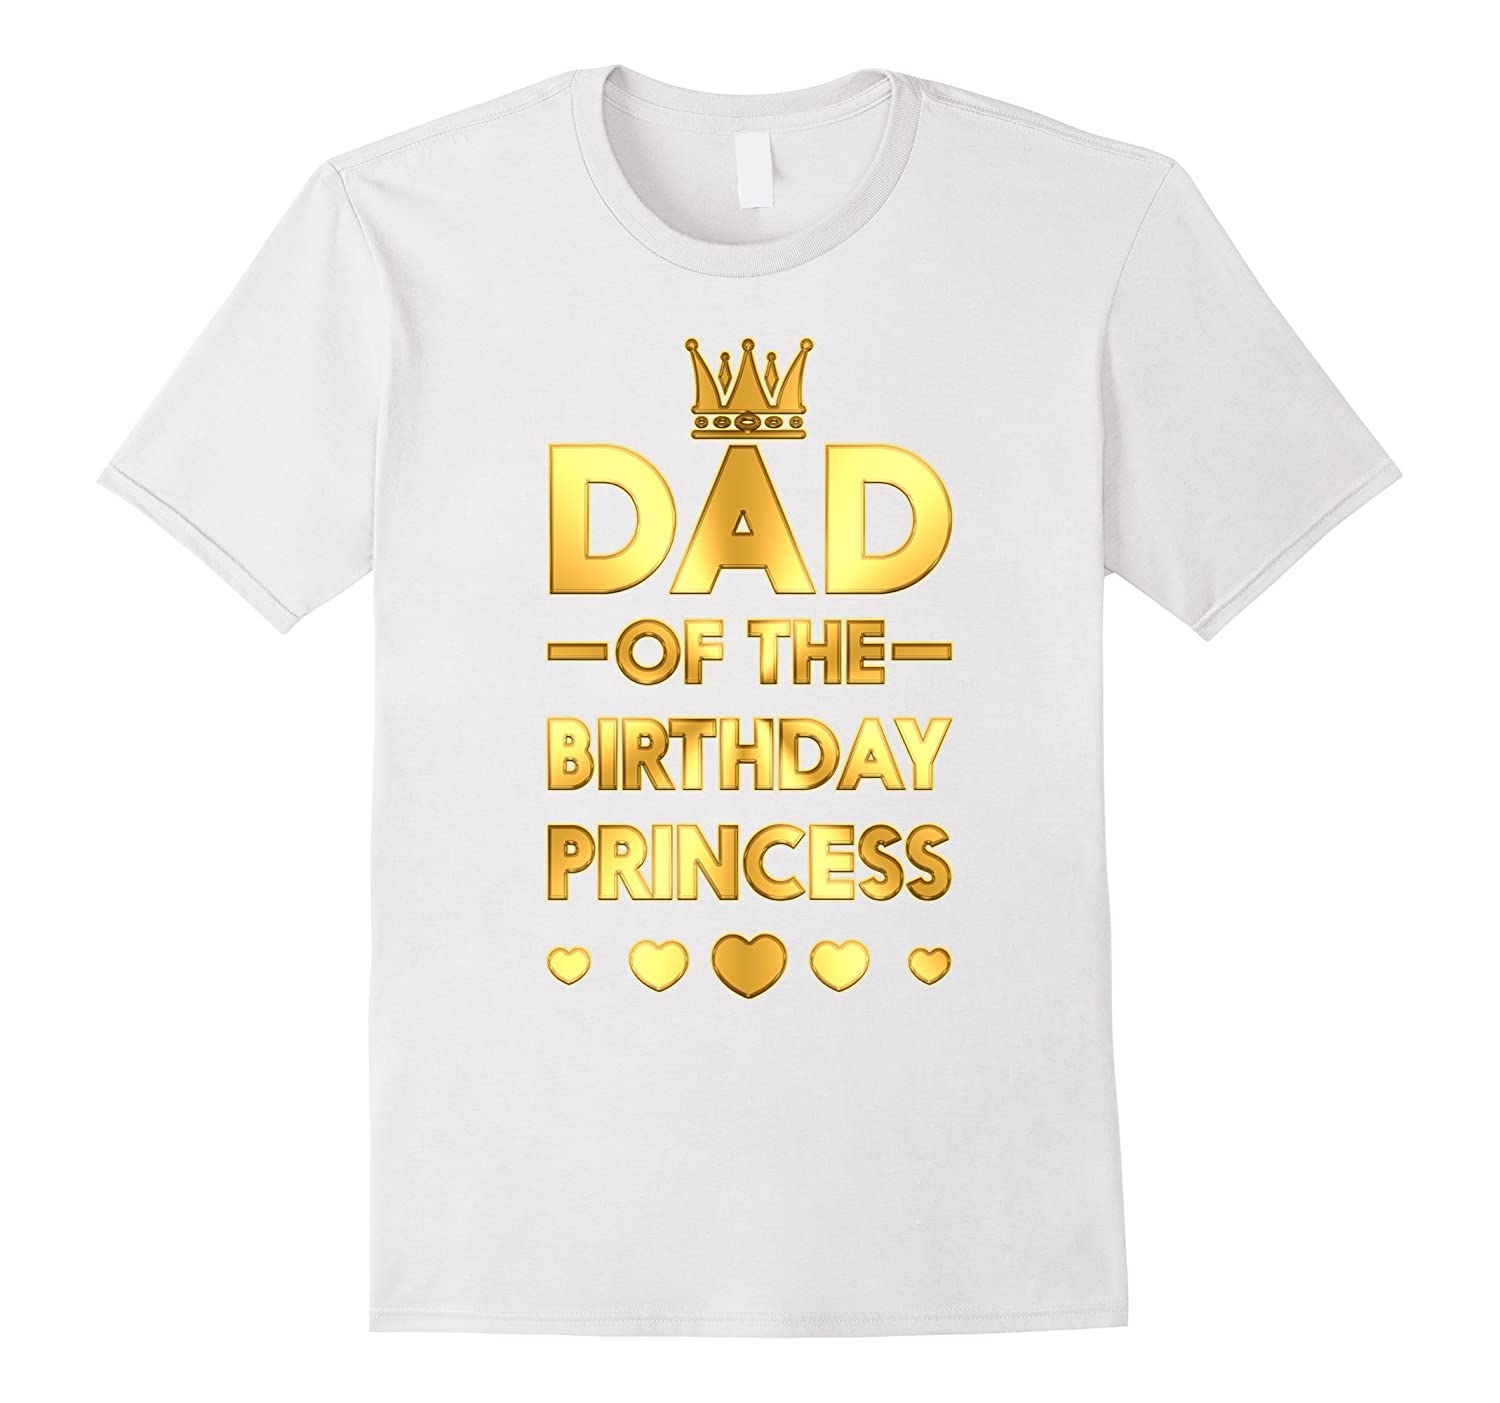 Dad Of The Birthday Princess Golden Matching Family T Shirt RT